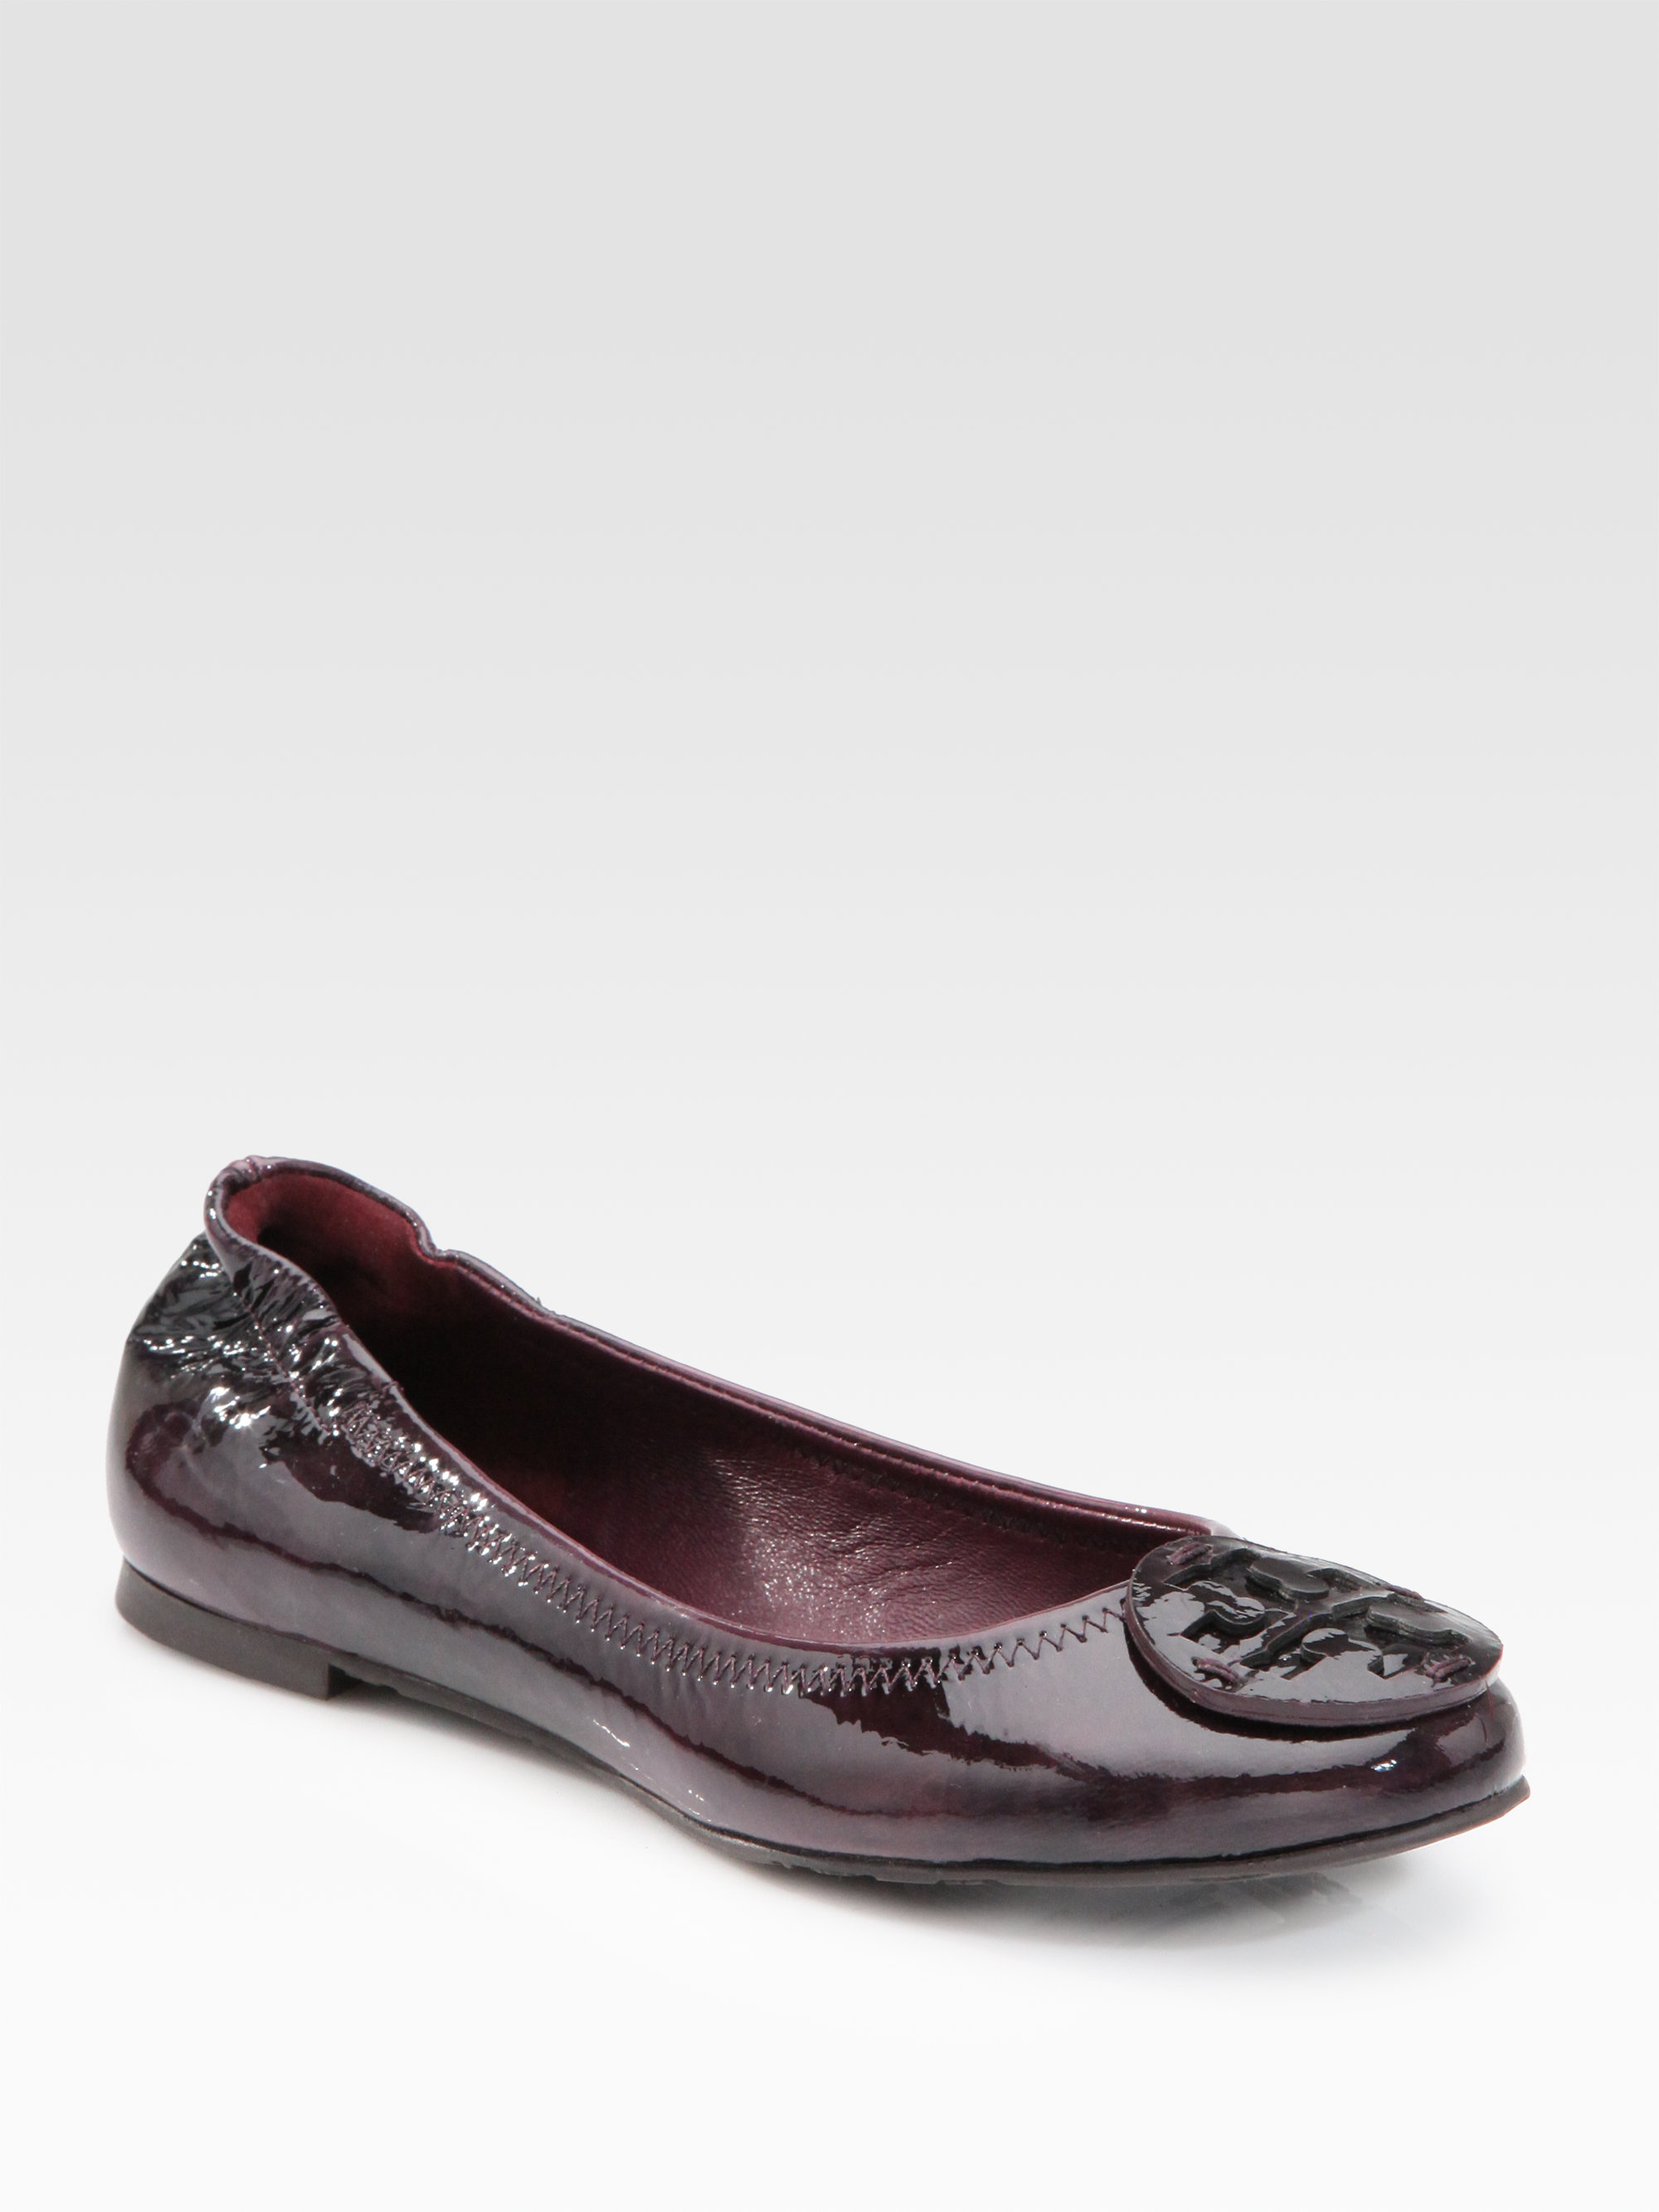 749a297fe9a Lyst - Tory Burch Reva Patent Leather Ballet Flats in Purple